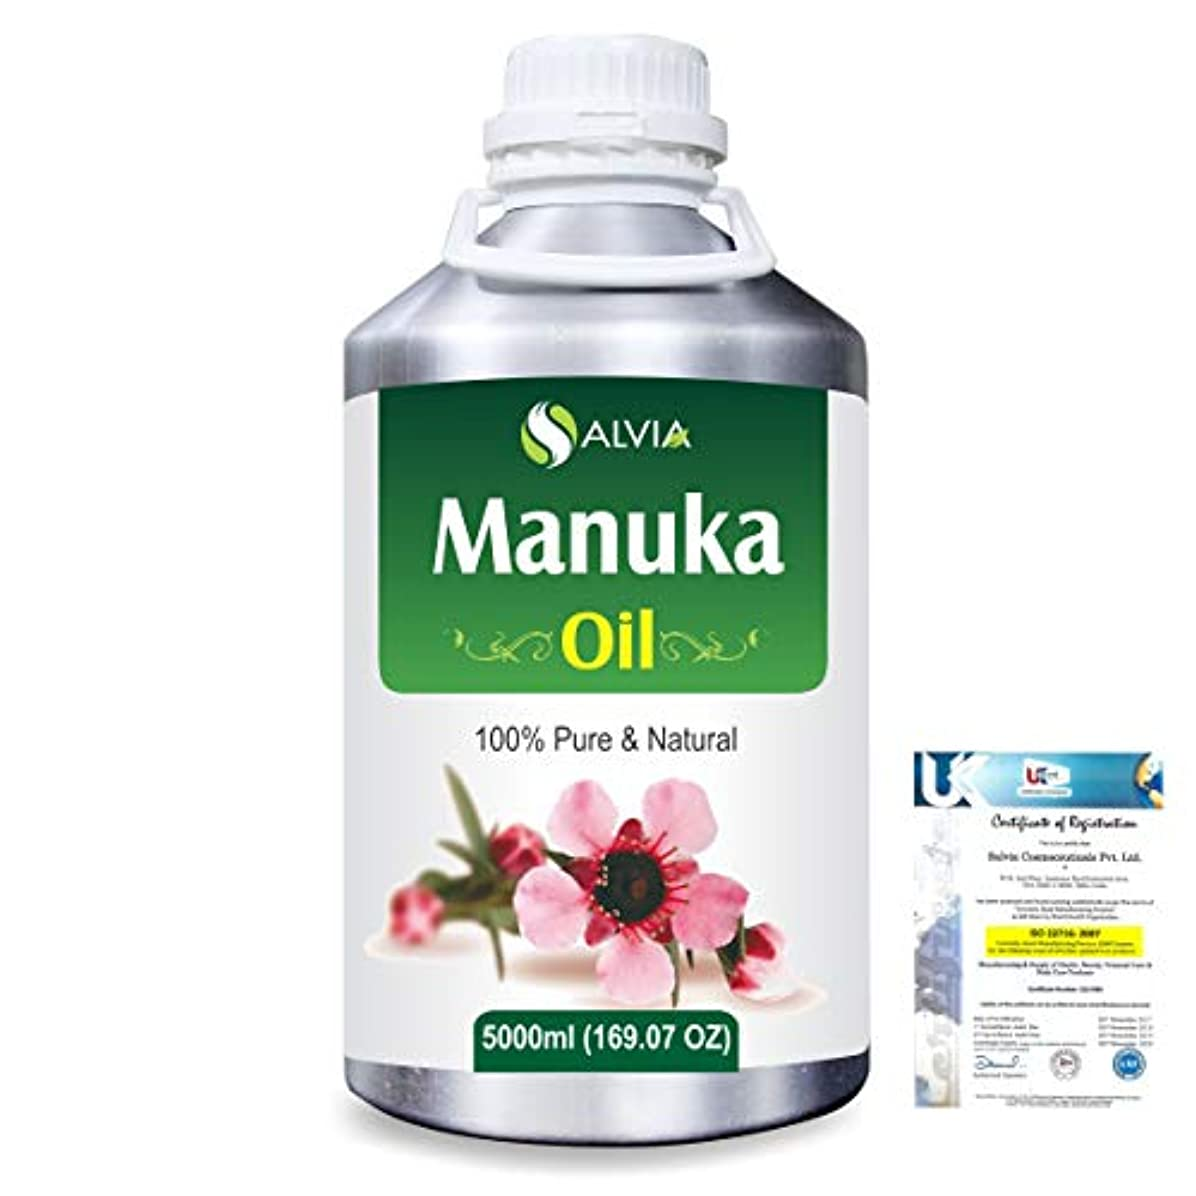 Manuka (Leptospermum scoparium) 100% Natural Pure Essential Oil 5000ml/169fl.oz.